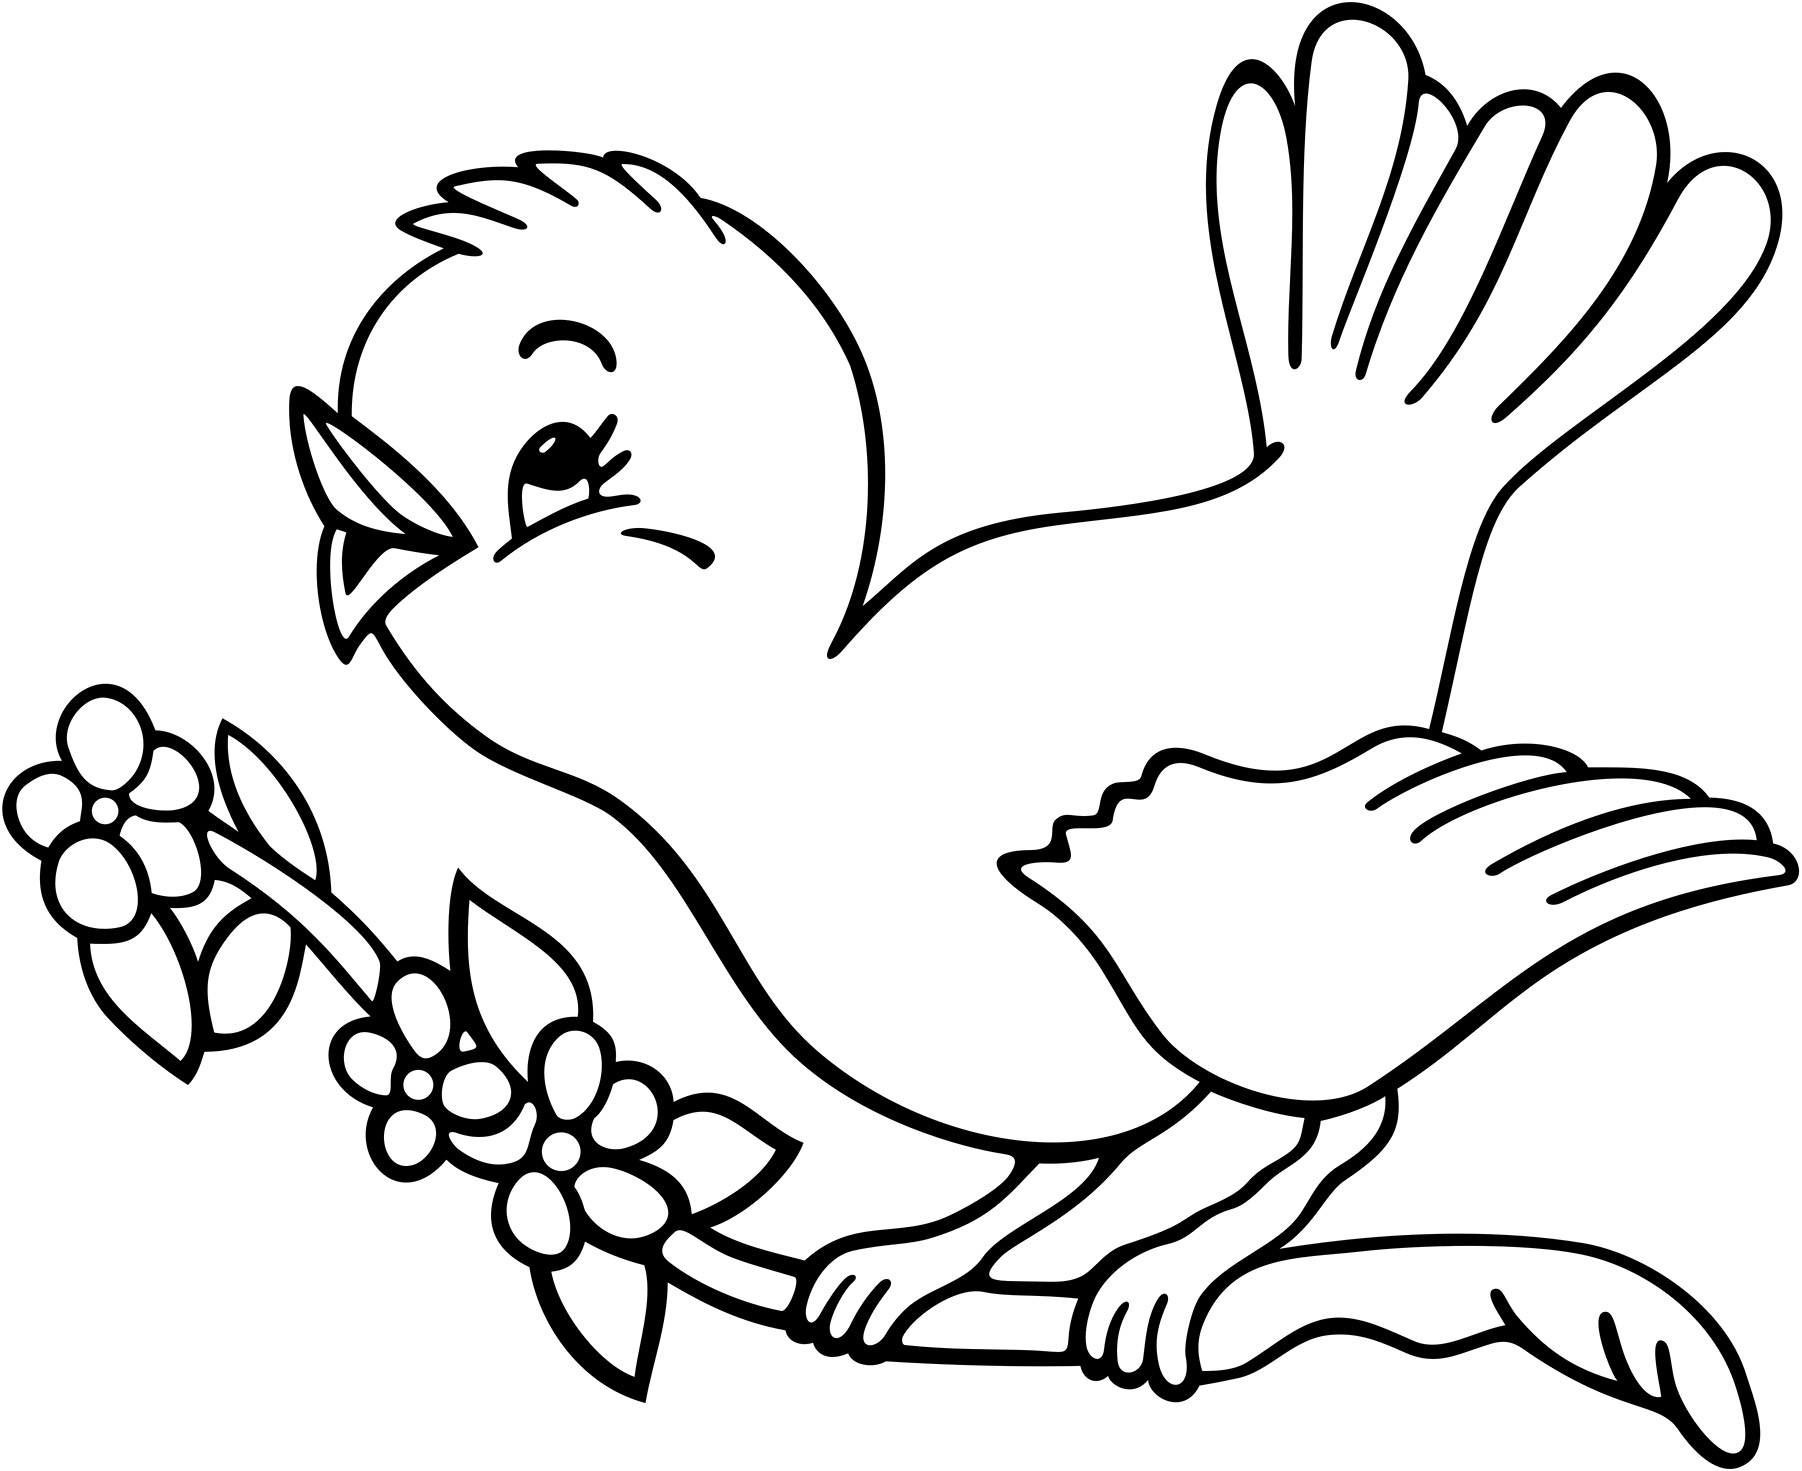 1802x1471 Limited Coloring Page Of A Bird Canada Goose Pictures To Color